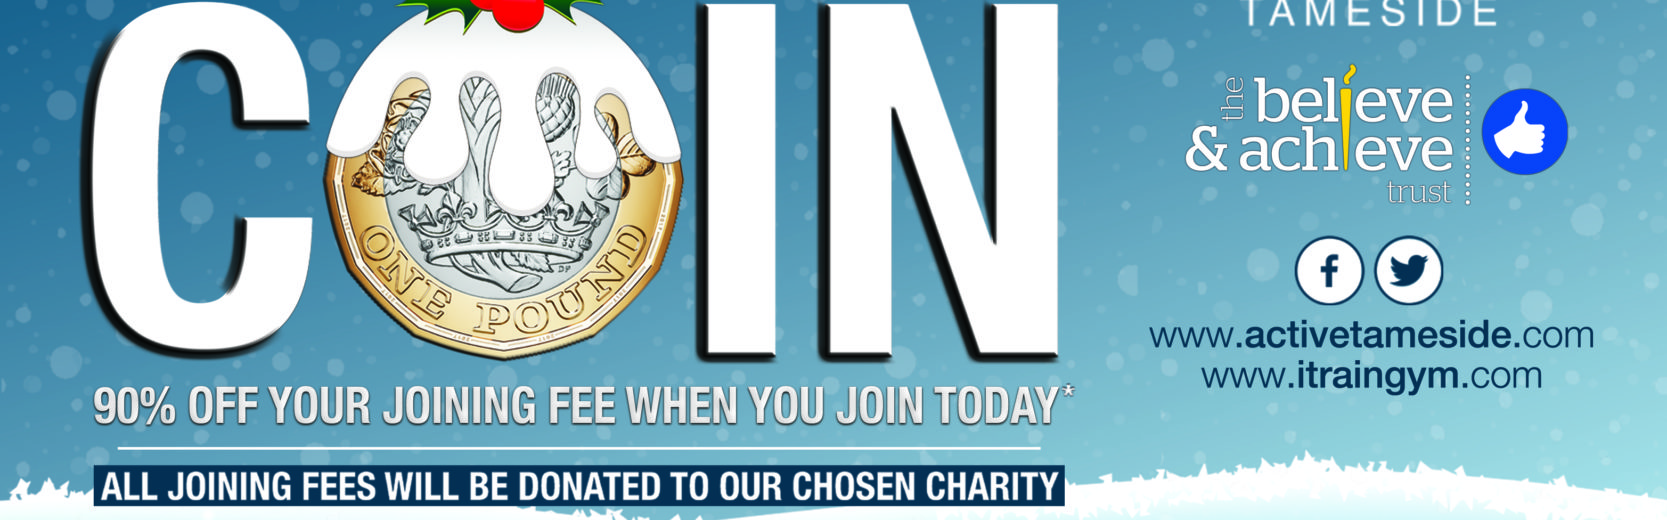 Join for a Coin with Active Tameside